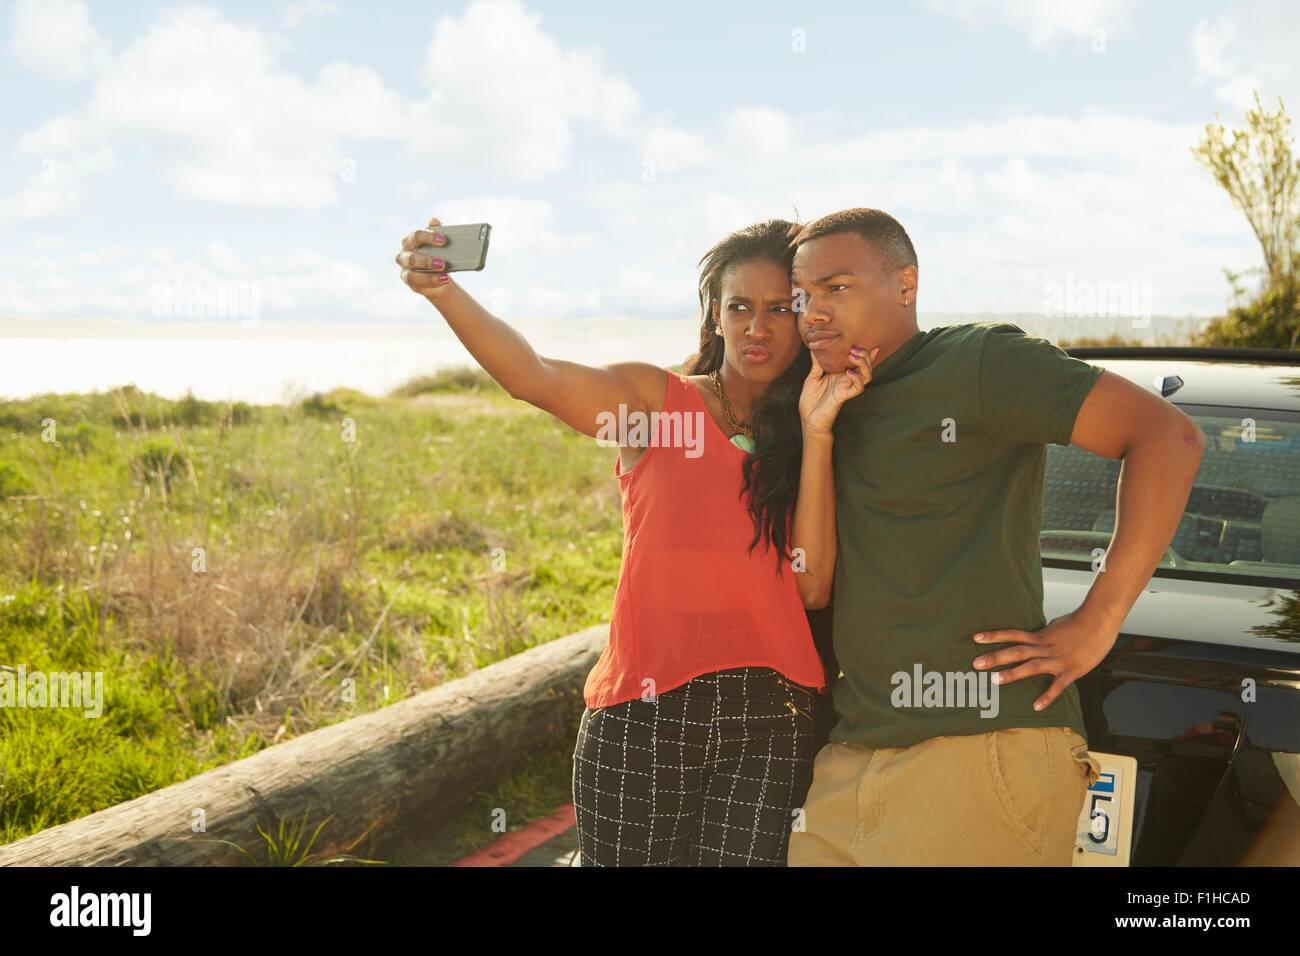 Young couple using smartphone, taking selfie, making faces - Stock Image